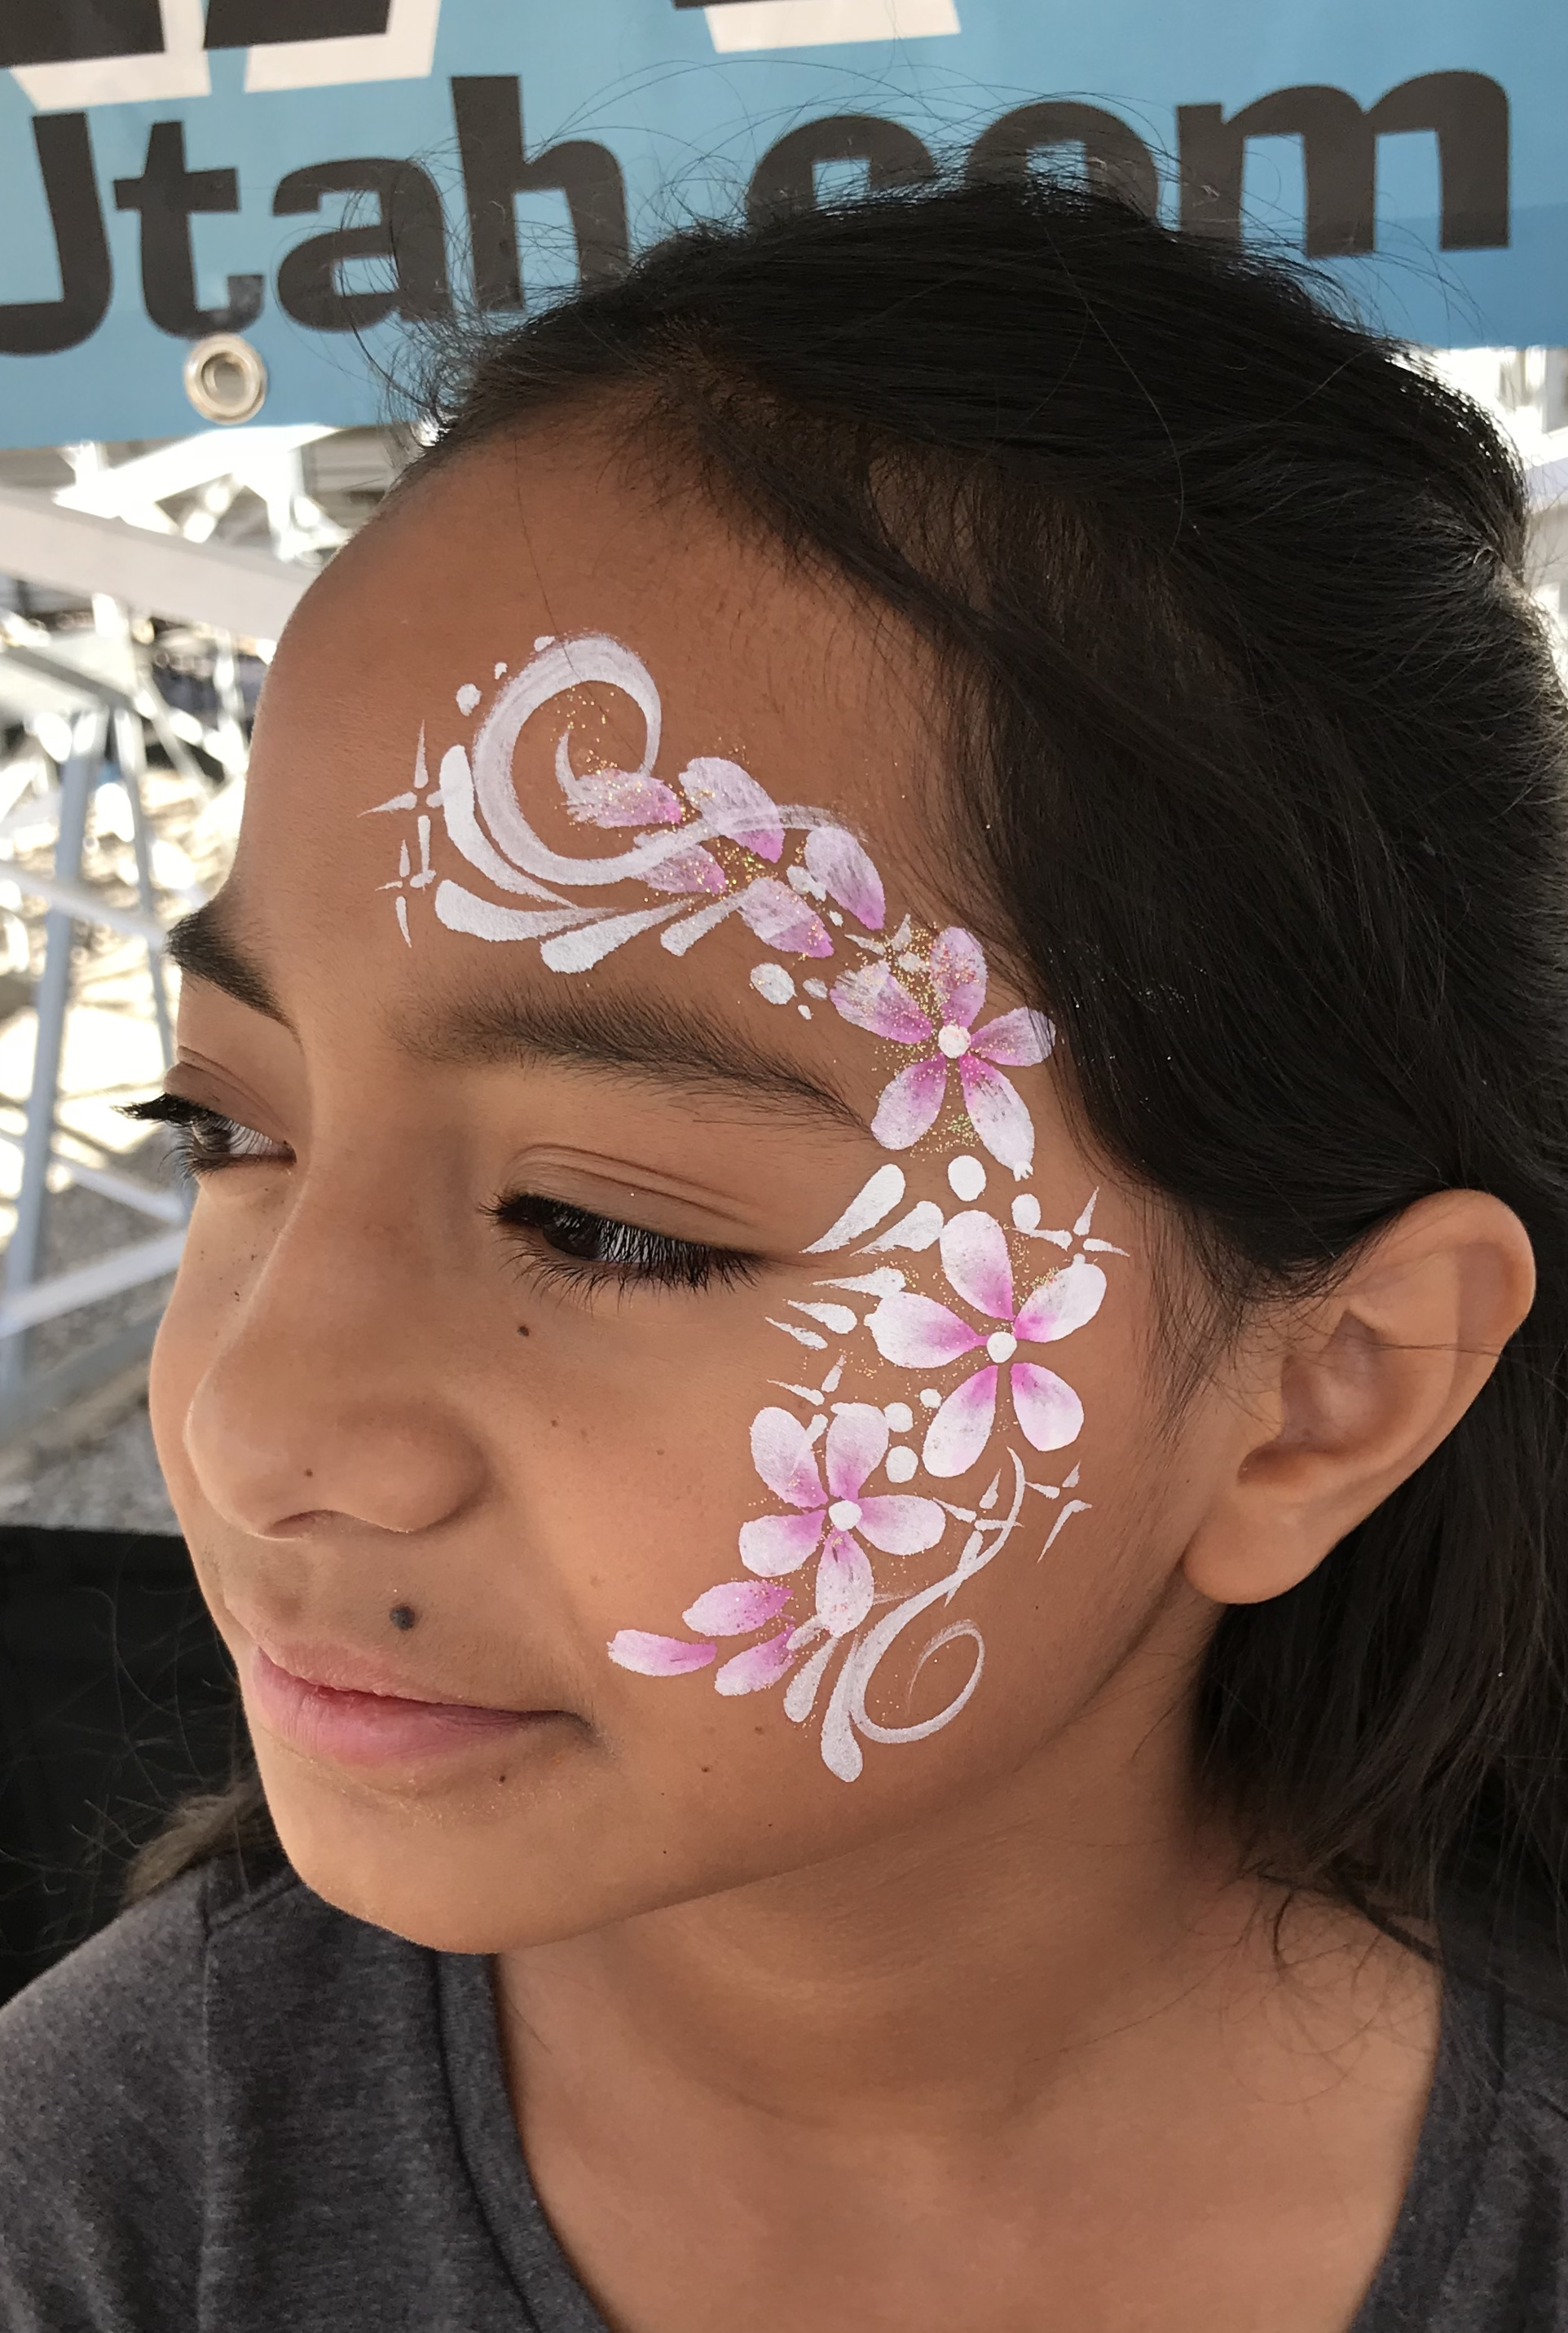 Floral face paint design